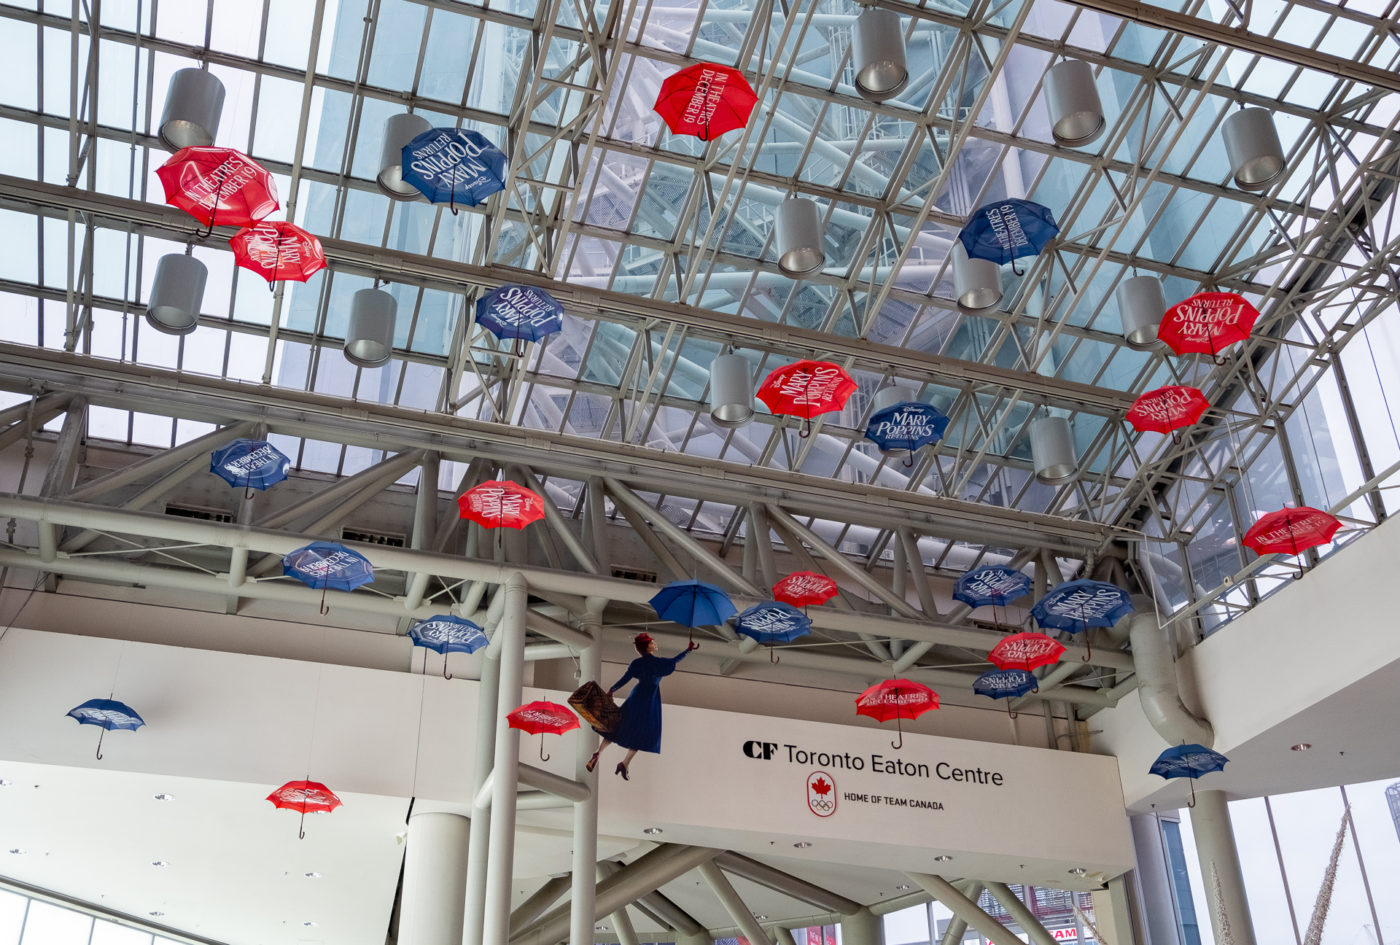 Mary Poppins - Malls - The Eaton Center - Activation